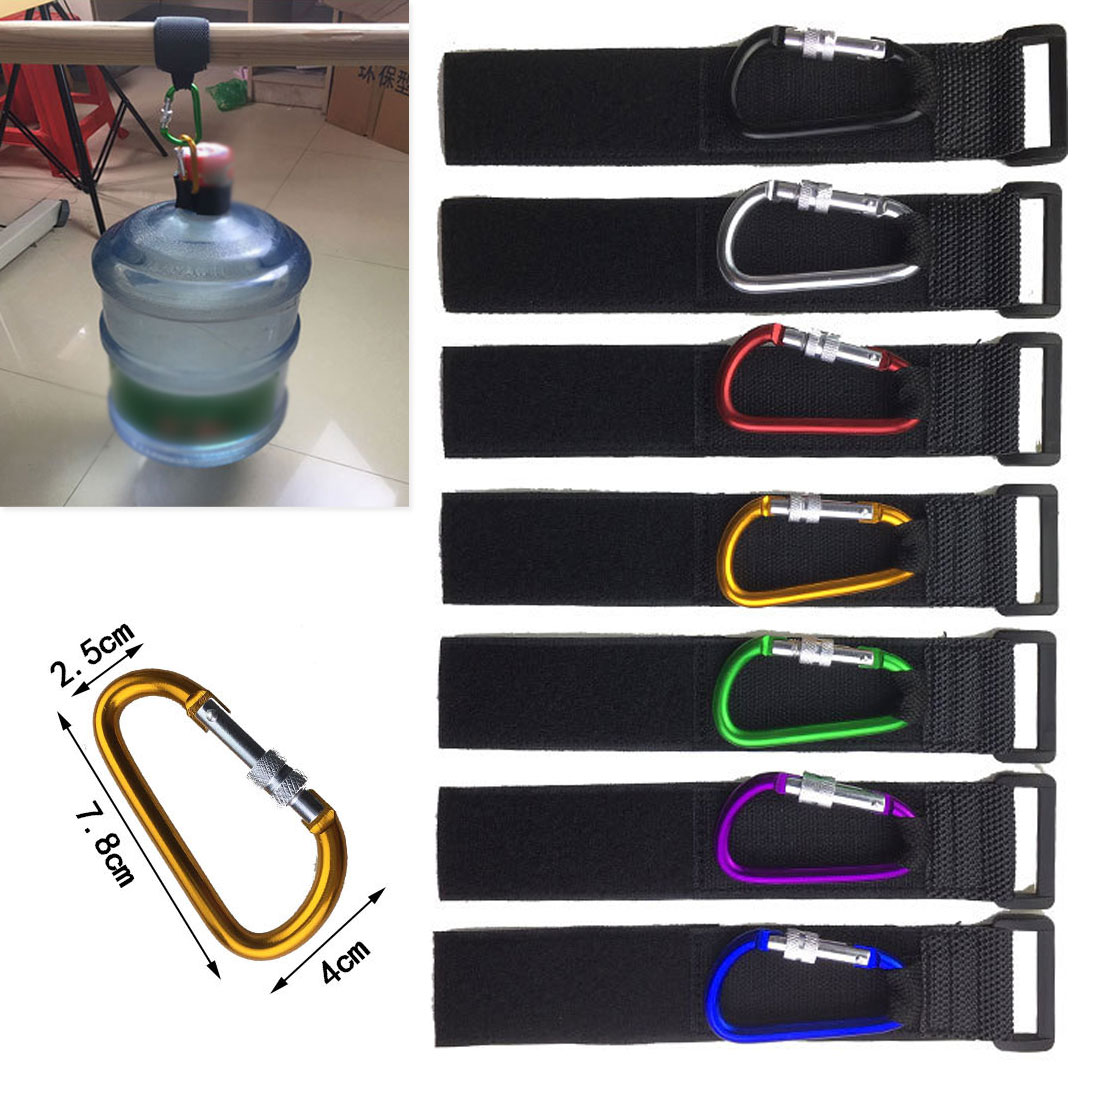 Universal Stroller Hooks Wheelchair Stroller Pram Carriage Bag Hanger Hook Baby Strollers Shopping Bag Clip Stroller Accessories in Strollers Accessories from Mother Kids